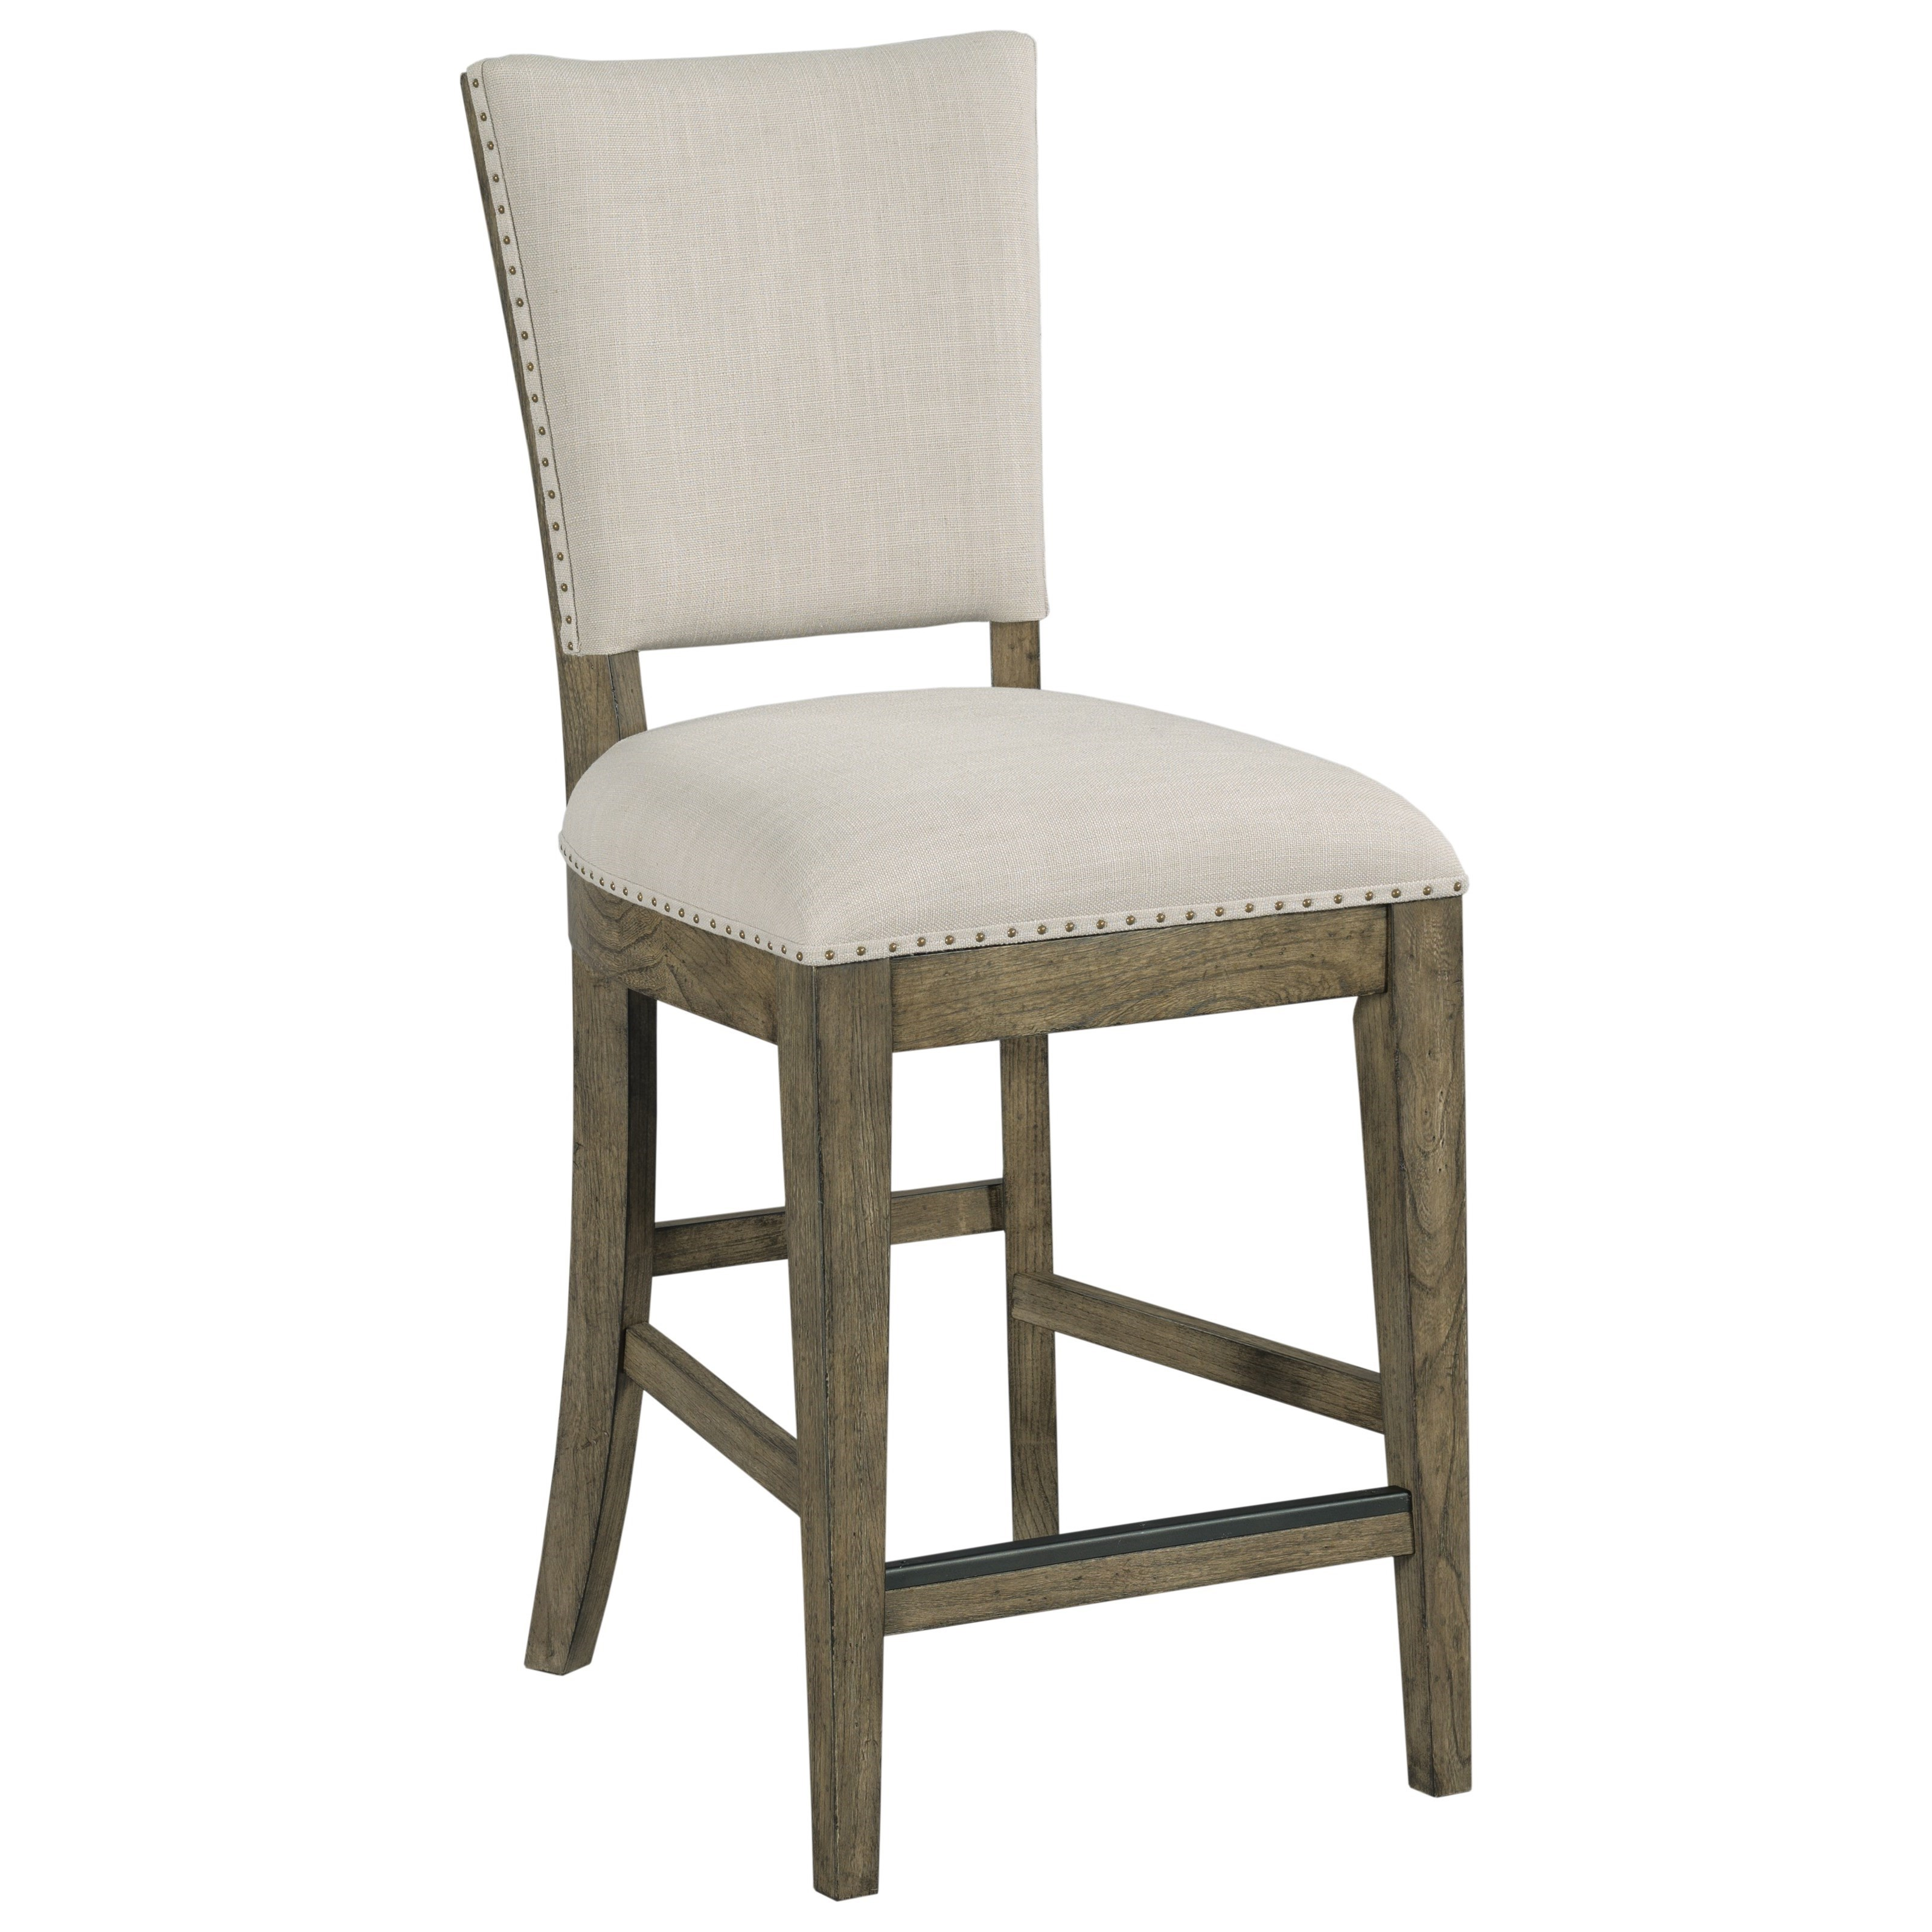 upholstered counter height chair high back sling patio chairs kincaid furniture plank road 706 691s kimler